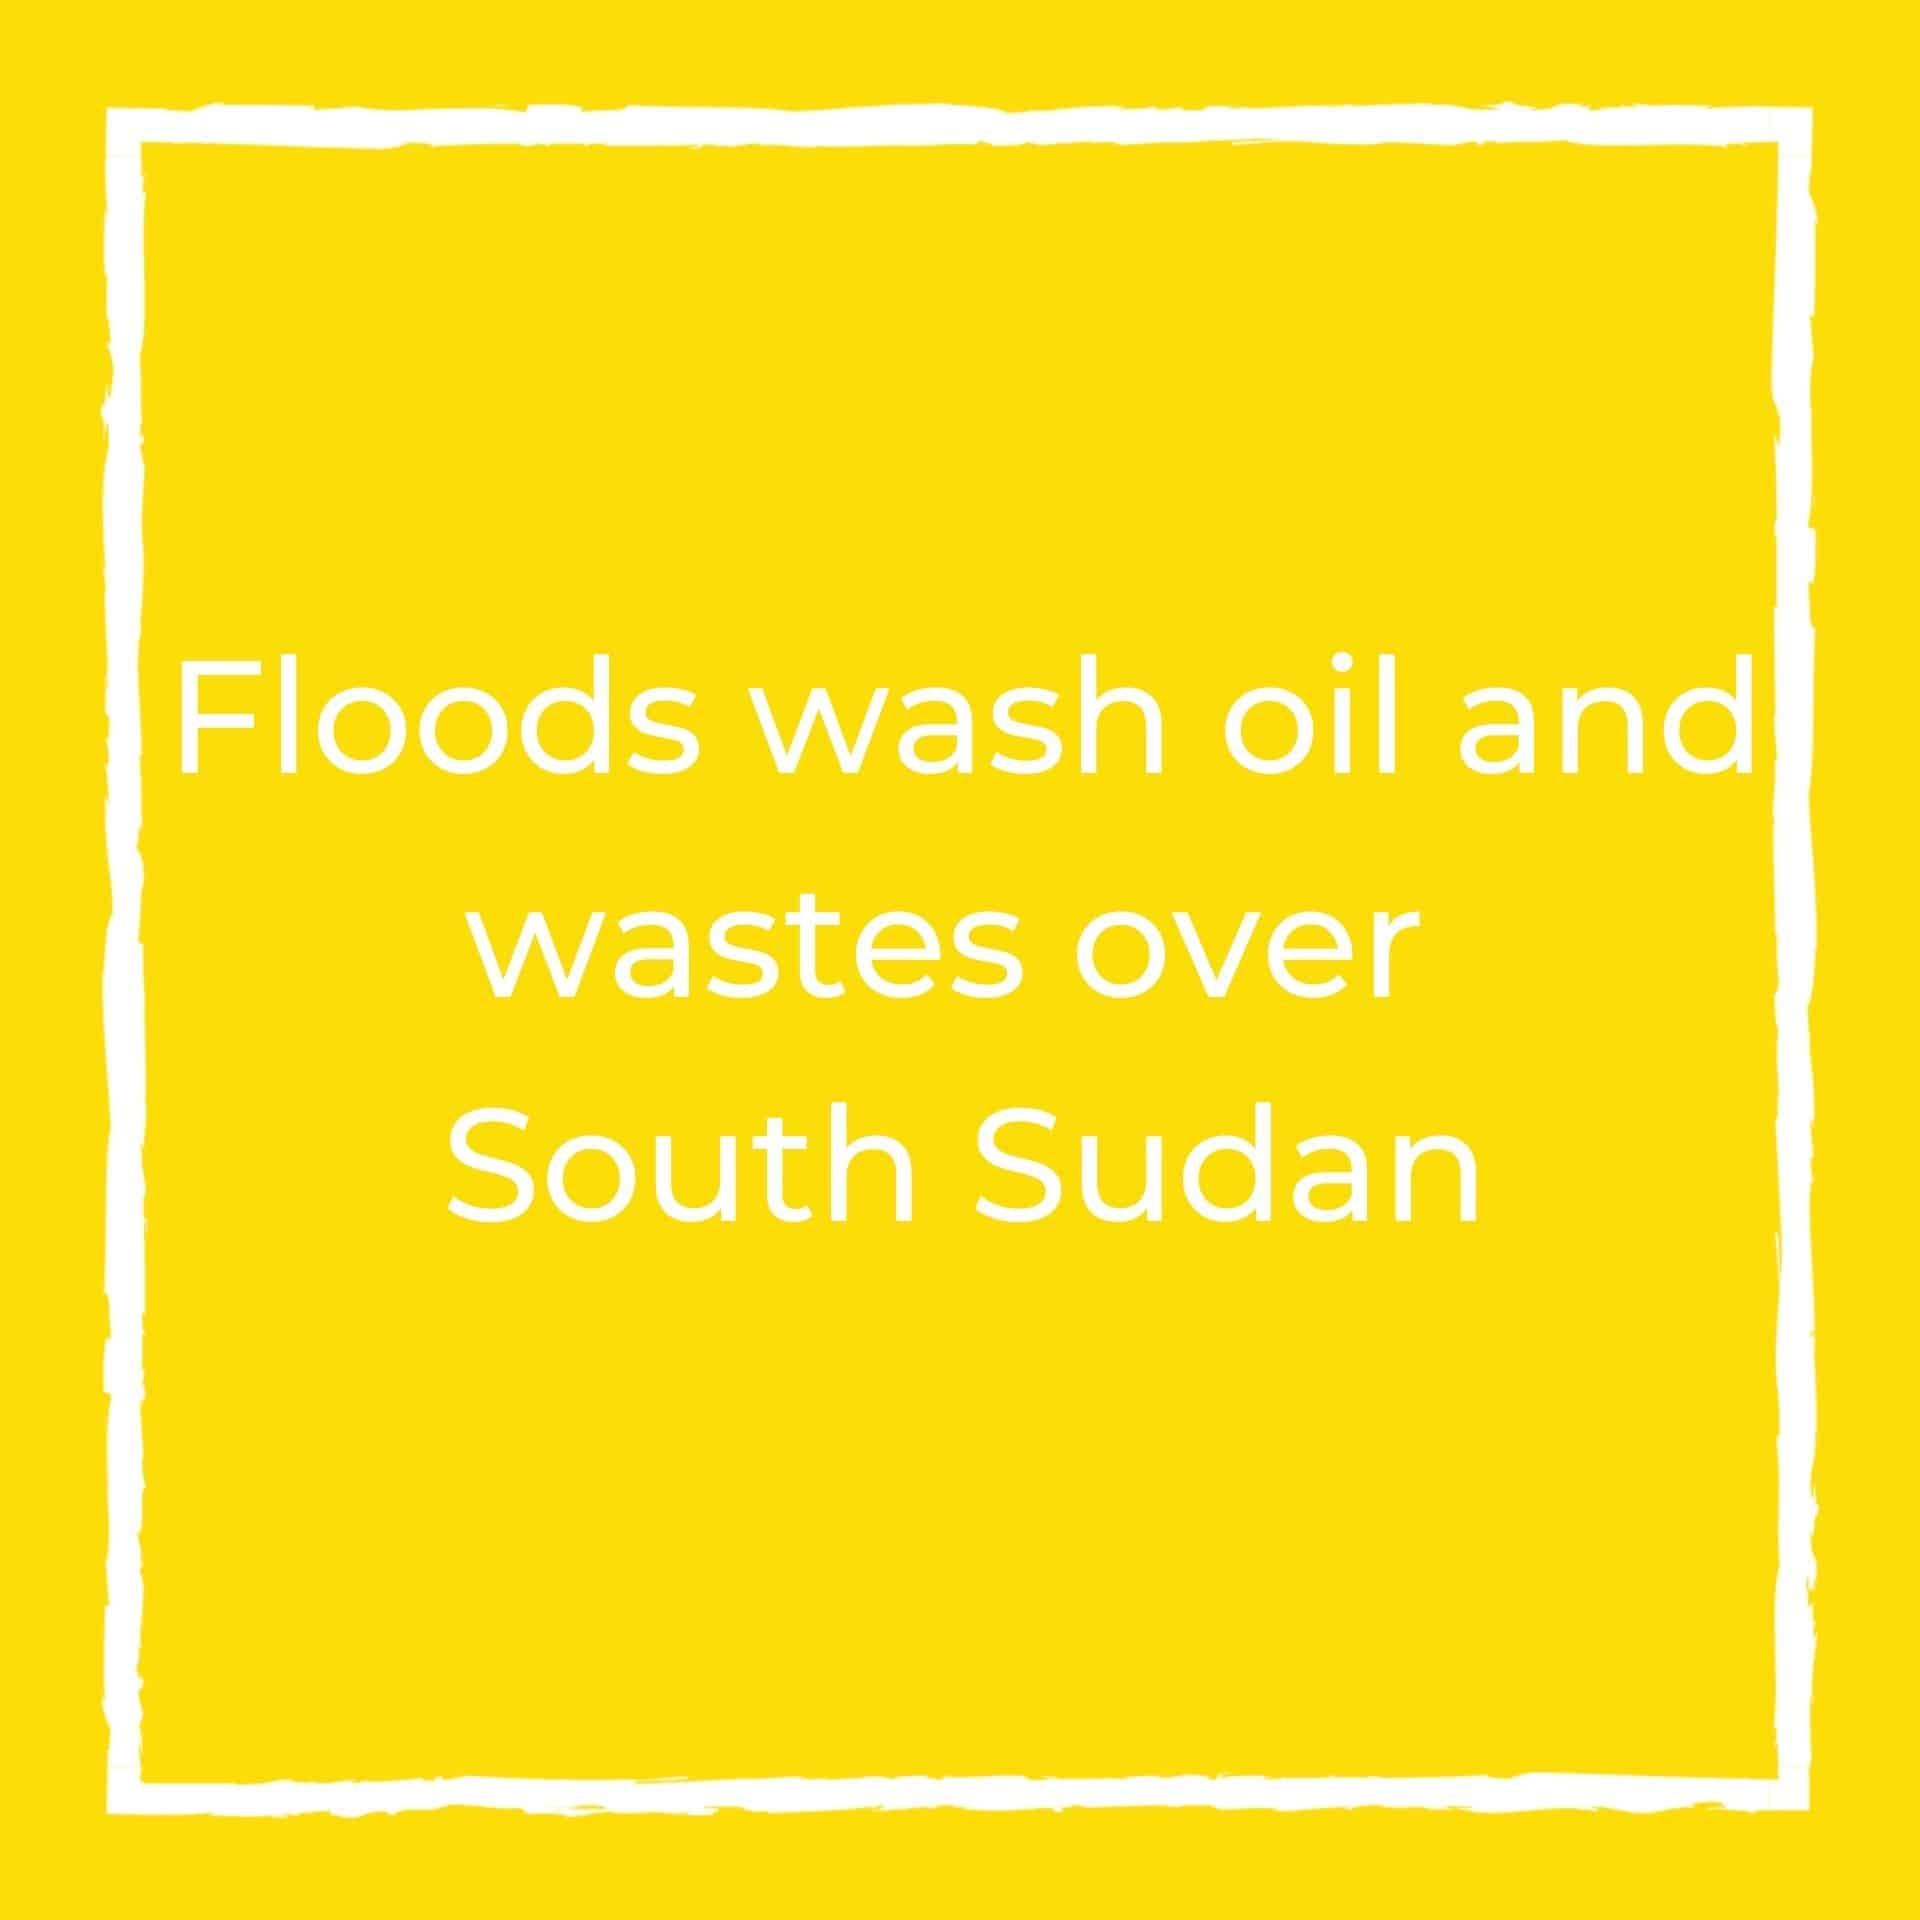 Floods wash oil and wastes over South Sudan: